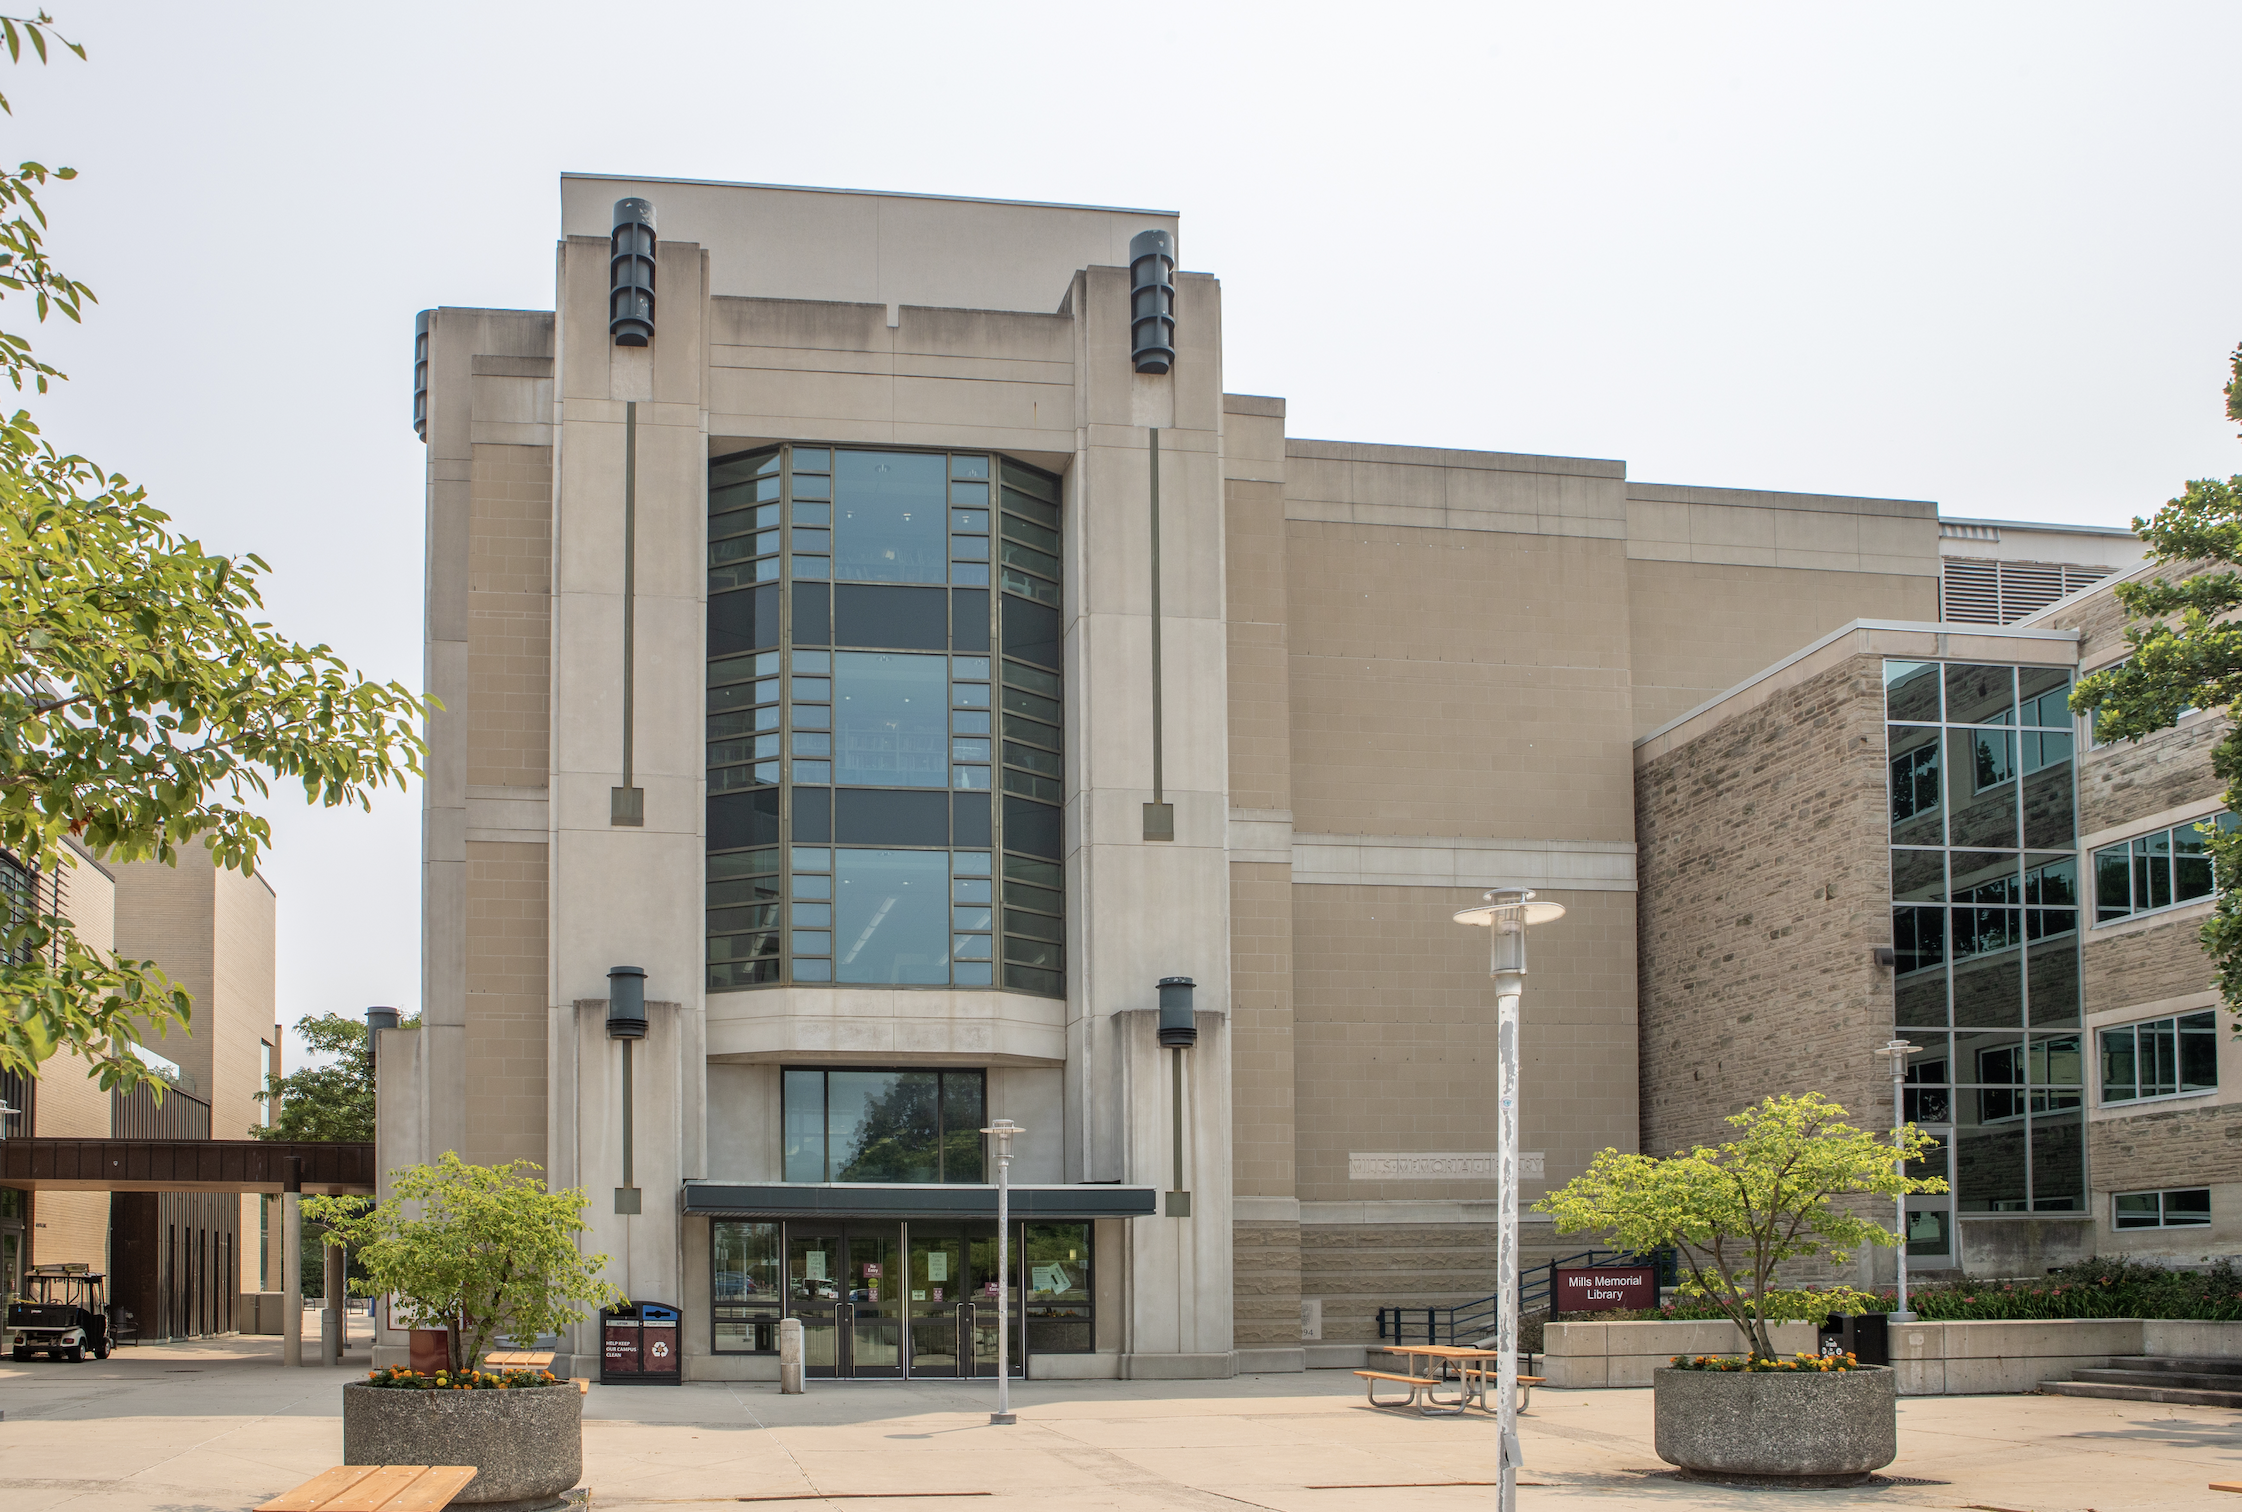 mills library